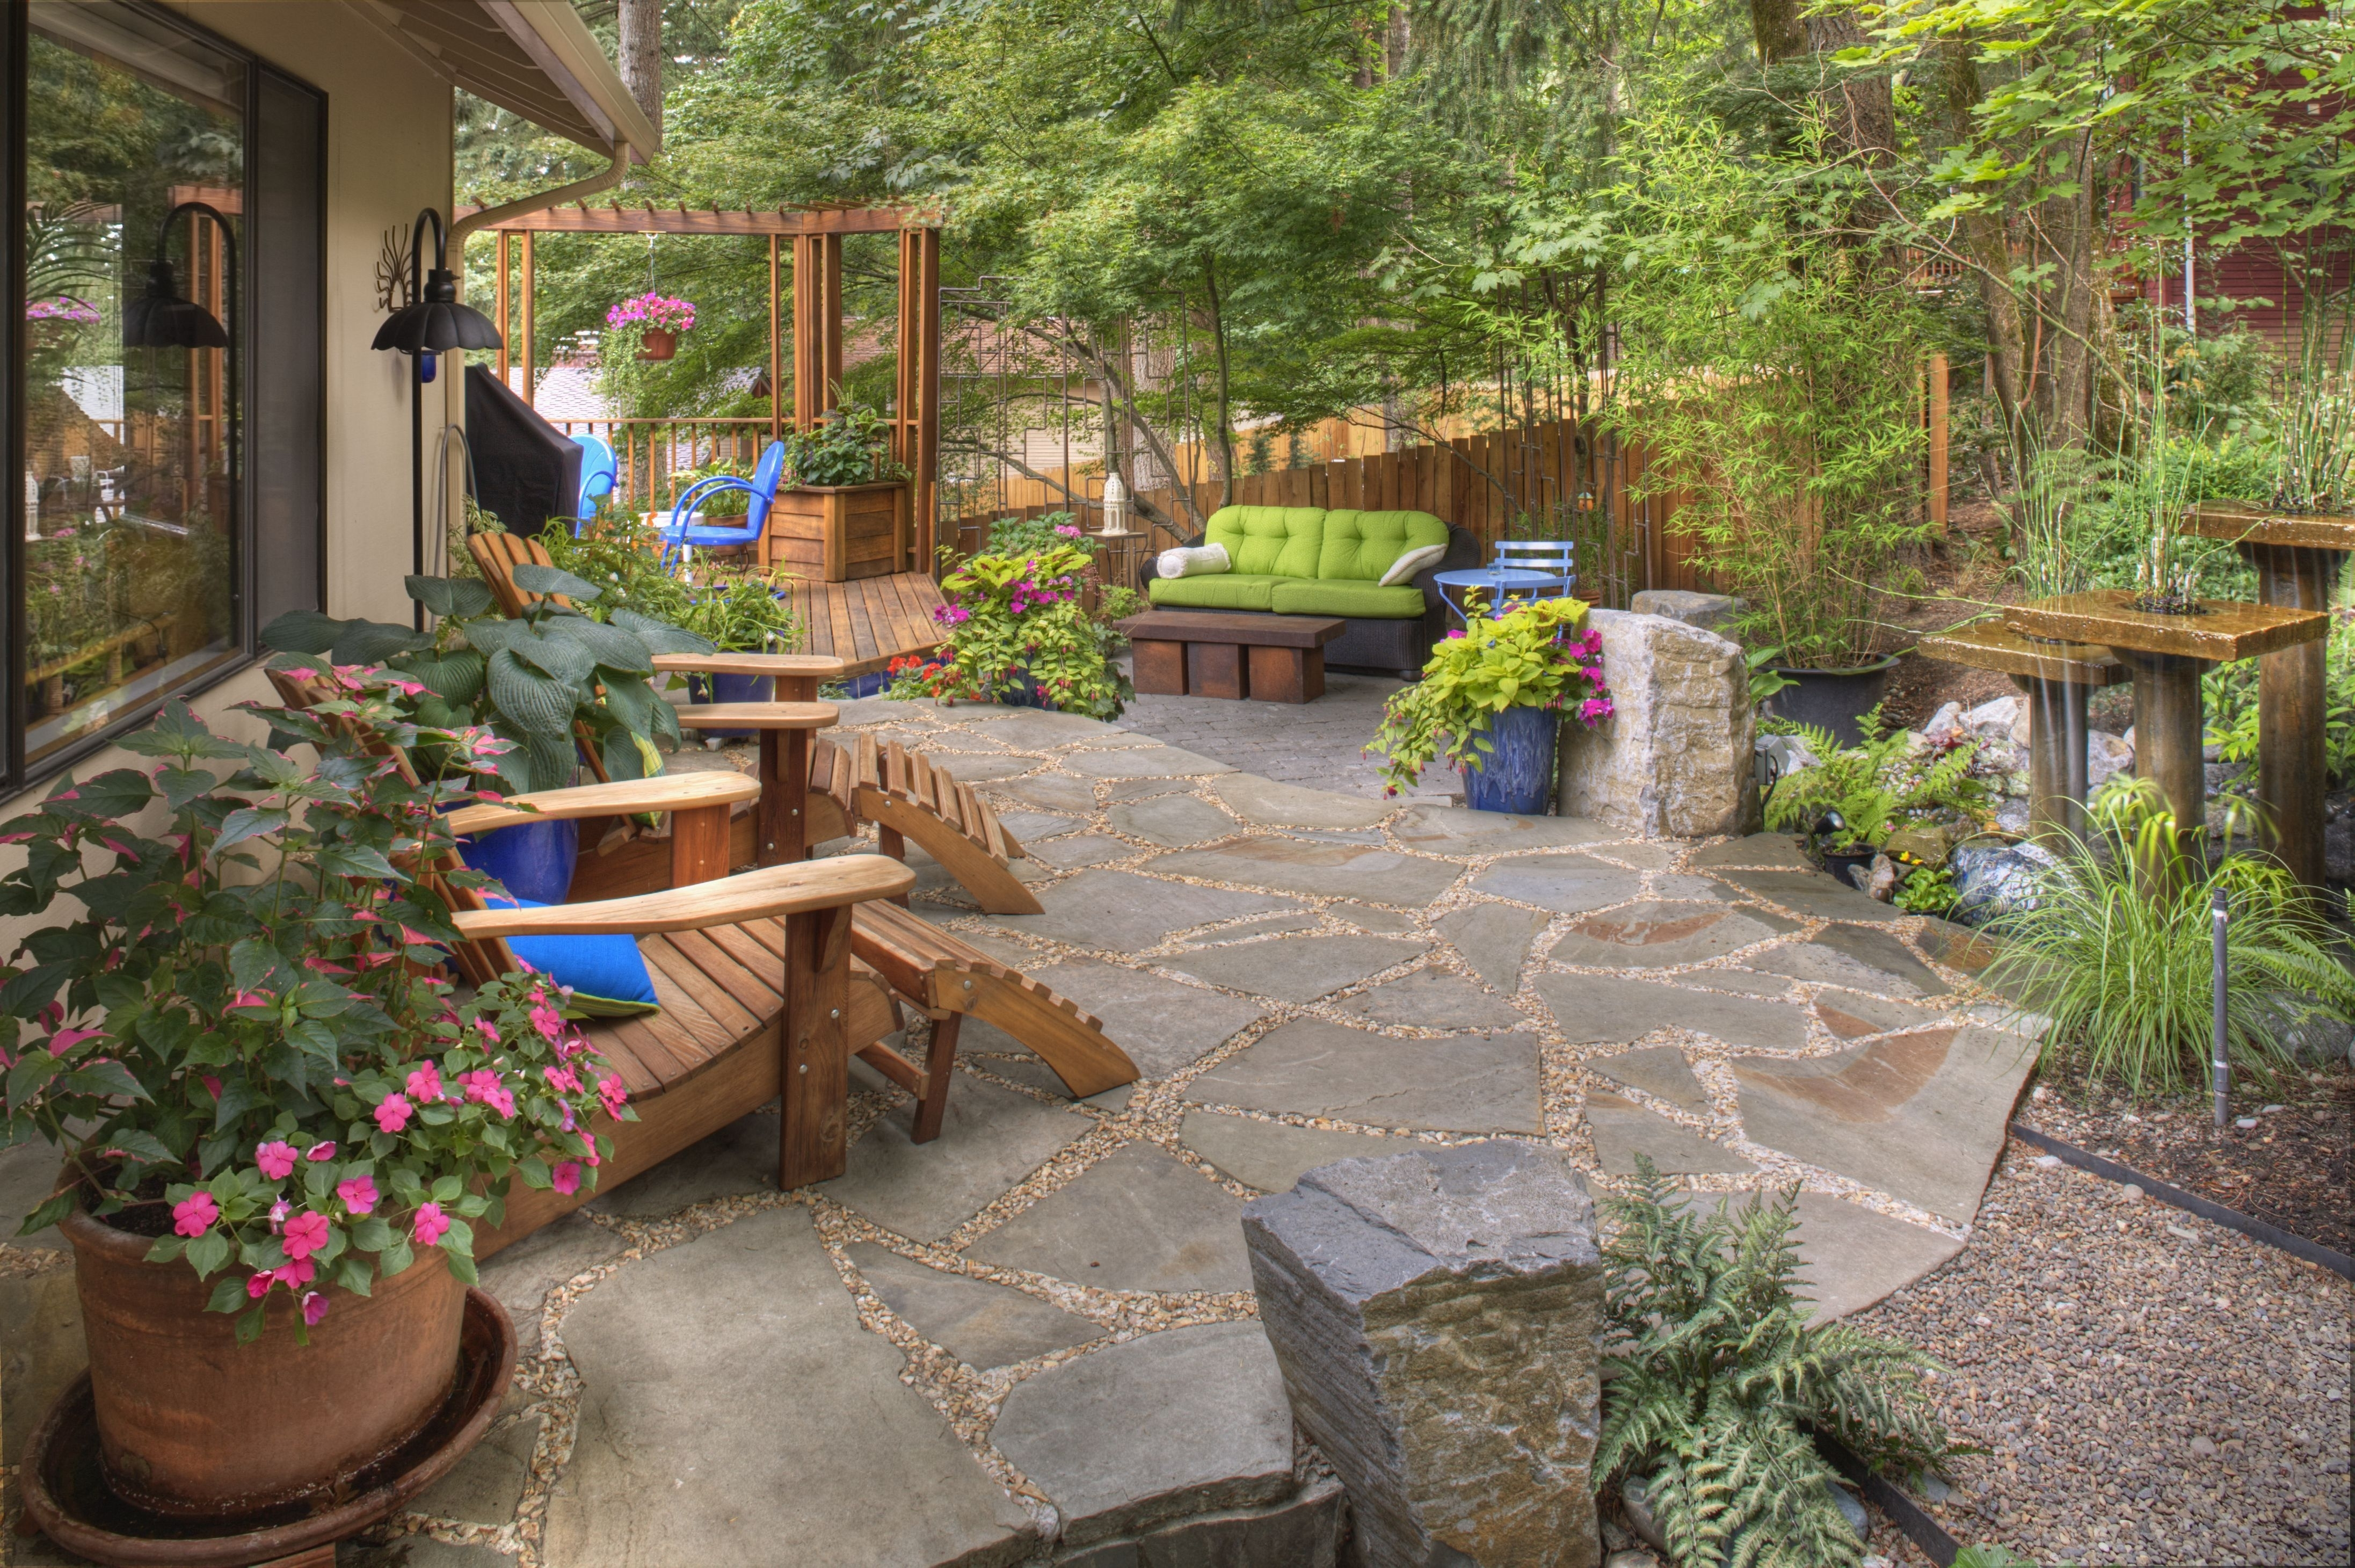 Woodsy Backyard Becomes Colorful | Deck, Landscaping & Patio Ideas with regard to Rustic Backyard Garden Ideas